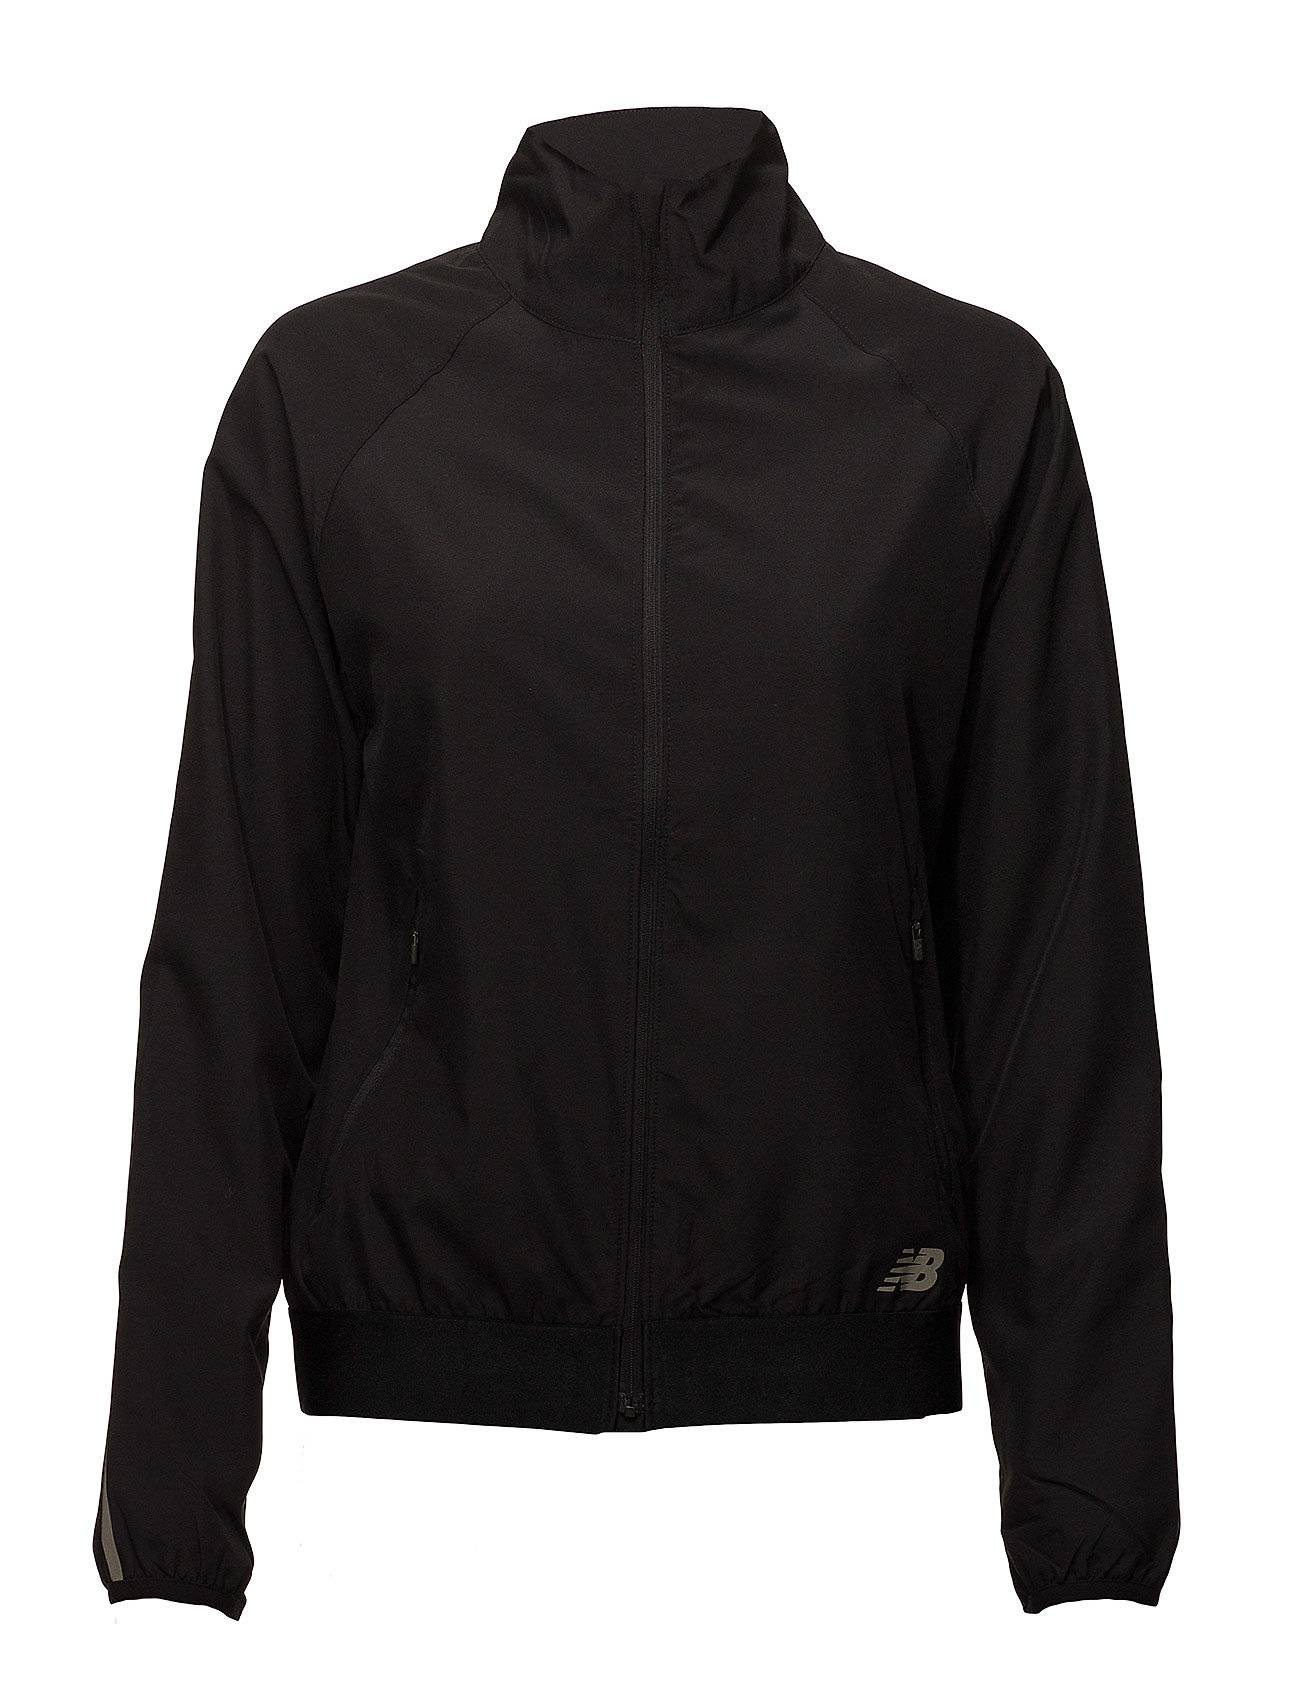 New Balance Accelerate Jacket